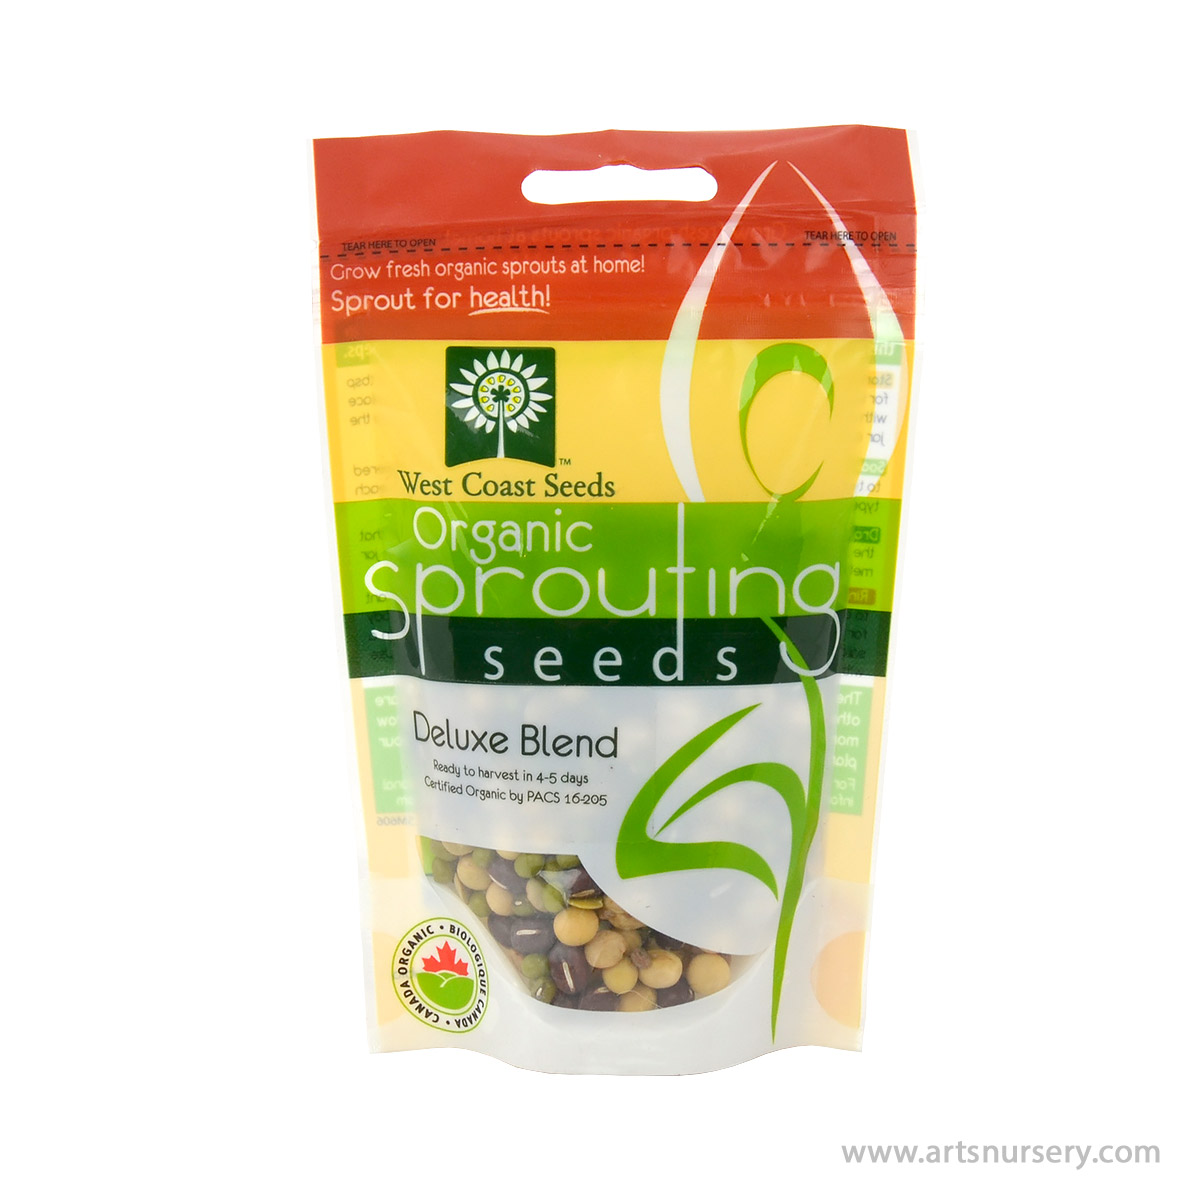 Deluxe Blend Organic Sprouting Seeds